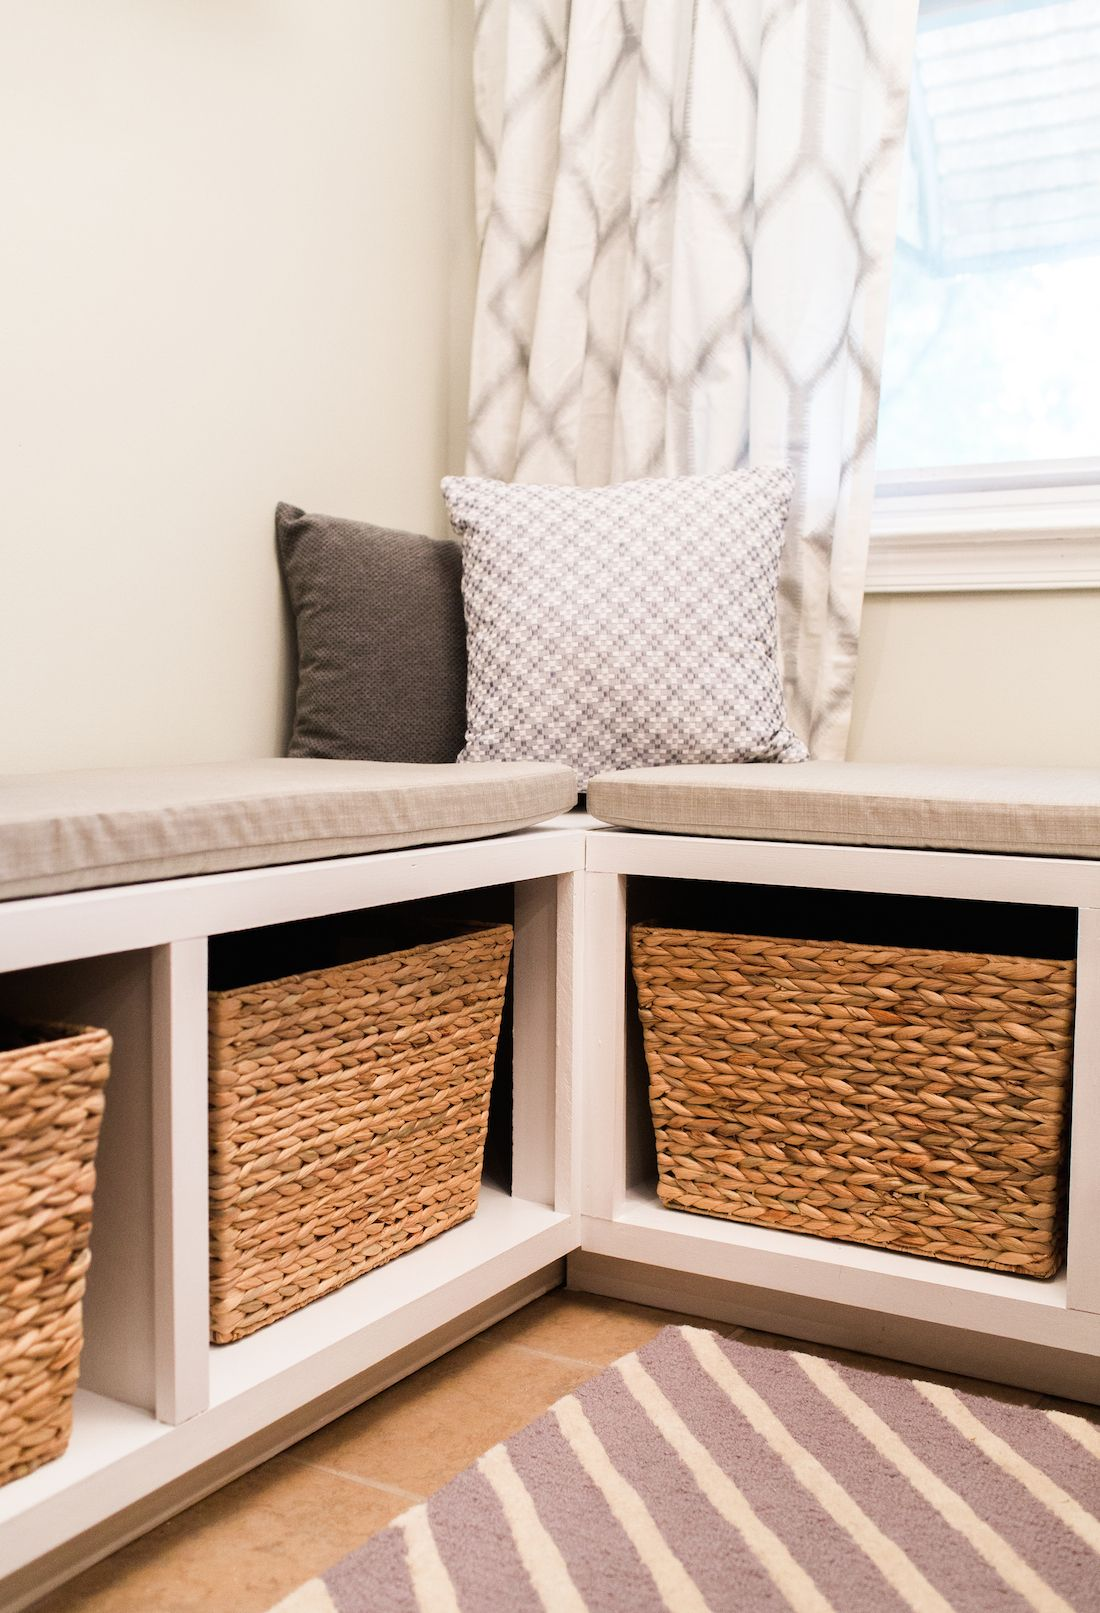 Build An L Shaped Bench To Maximize Seating And Storage In A Tight Space East Coast Creative